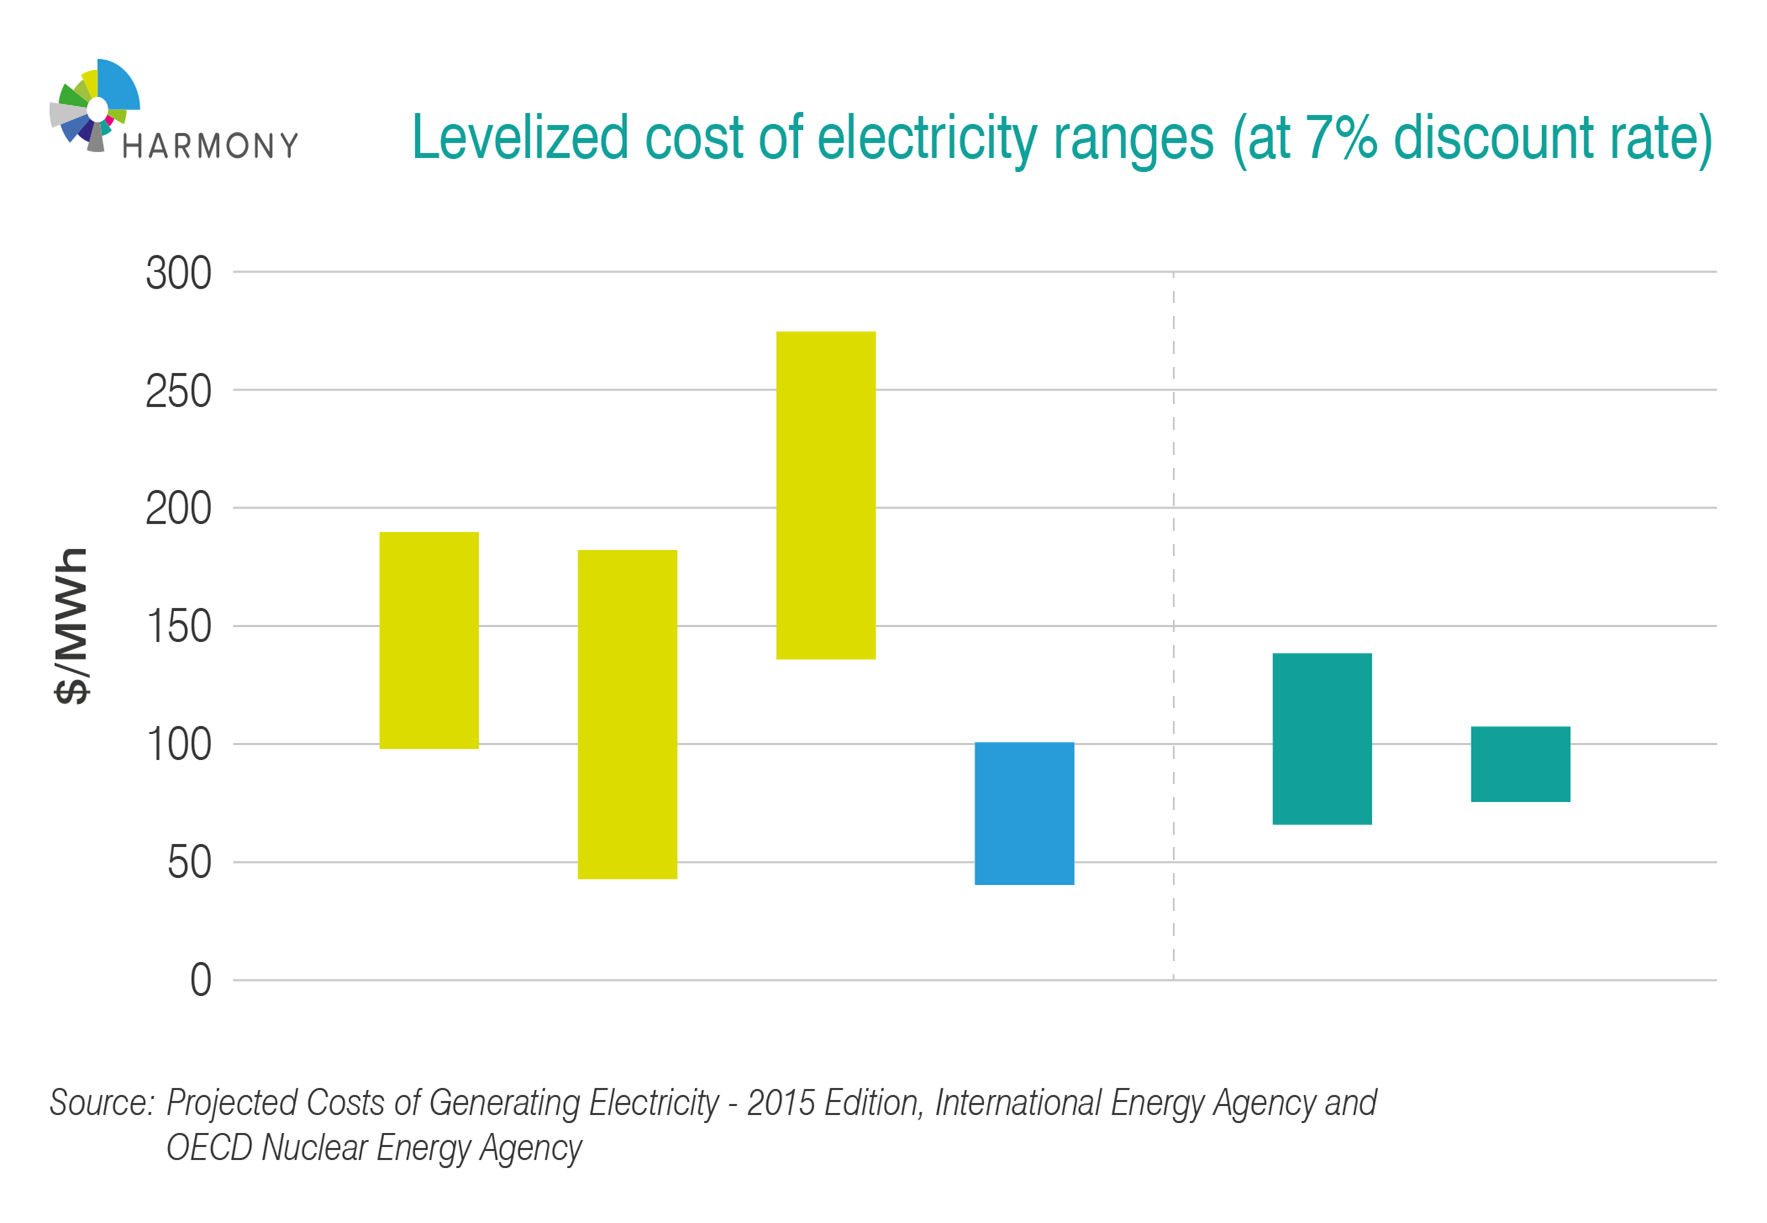 Levelized cost of electricity ranges (at 7% discount rate)